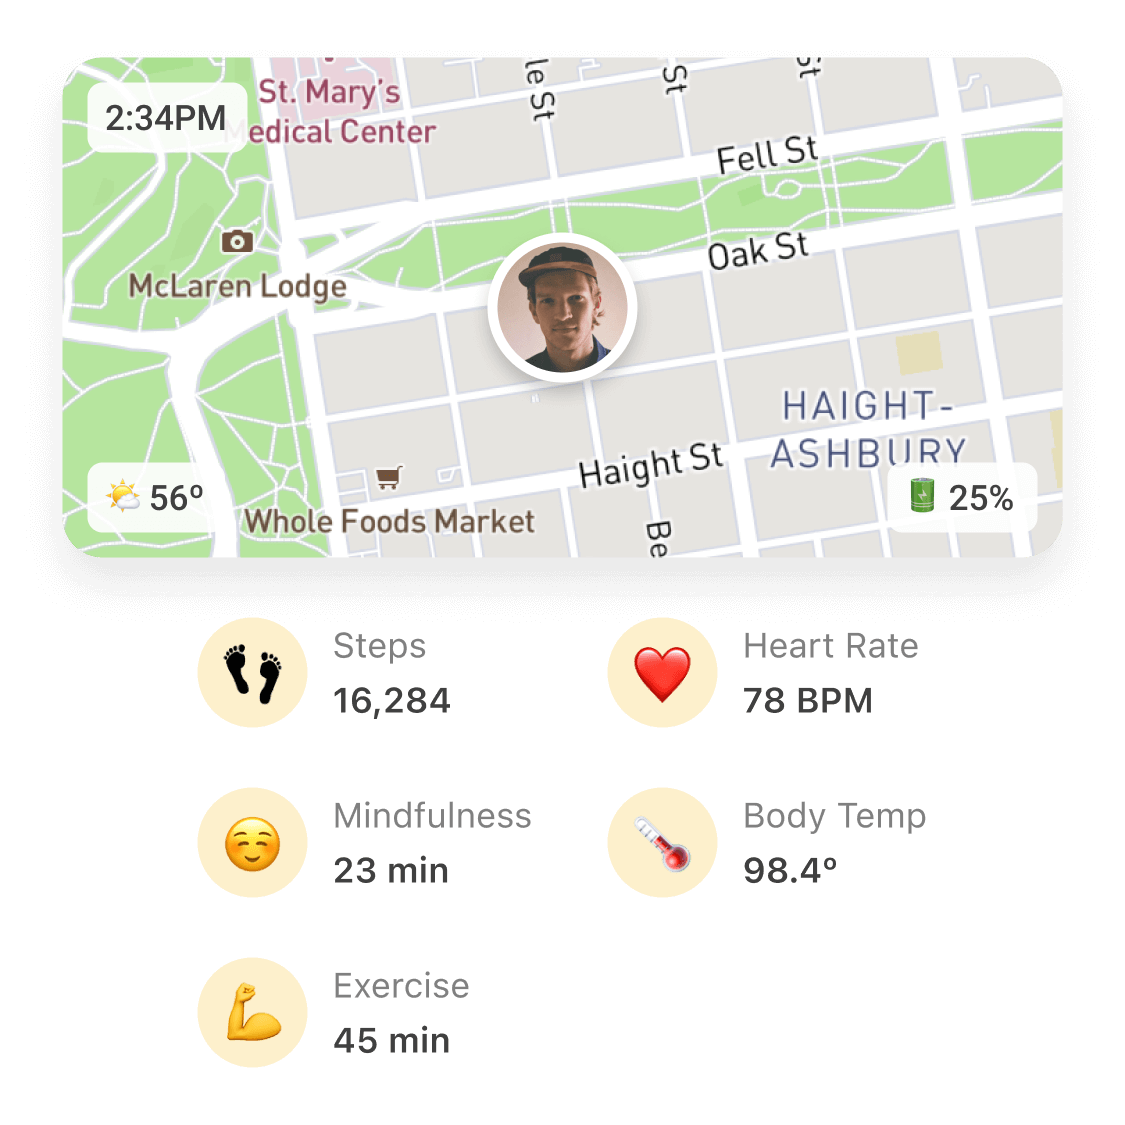 Elements of Cocoon's interface, showing a user's position on a map, step count, mindfulness minutes, exercise minutes, heart rate, and body temperature.